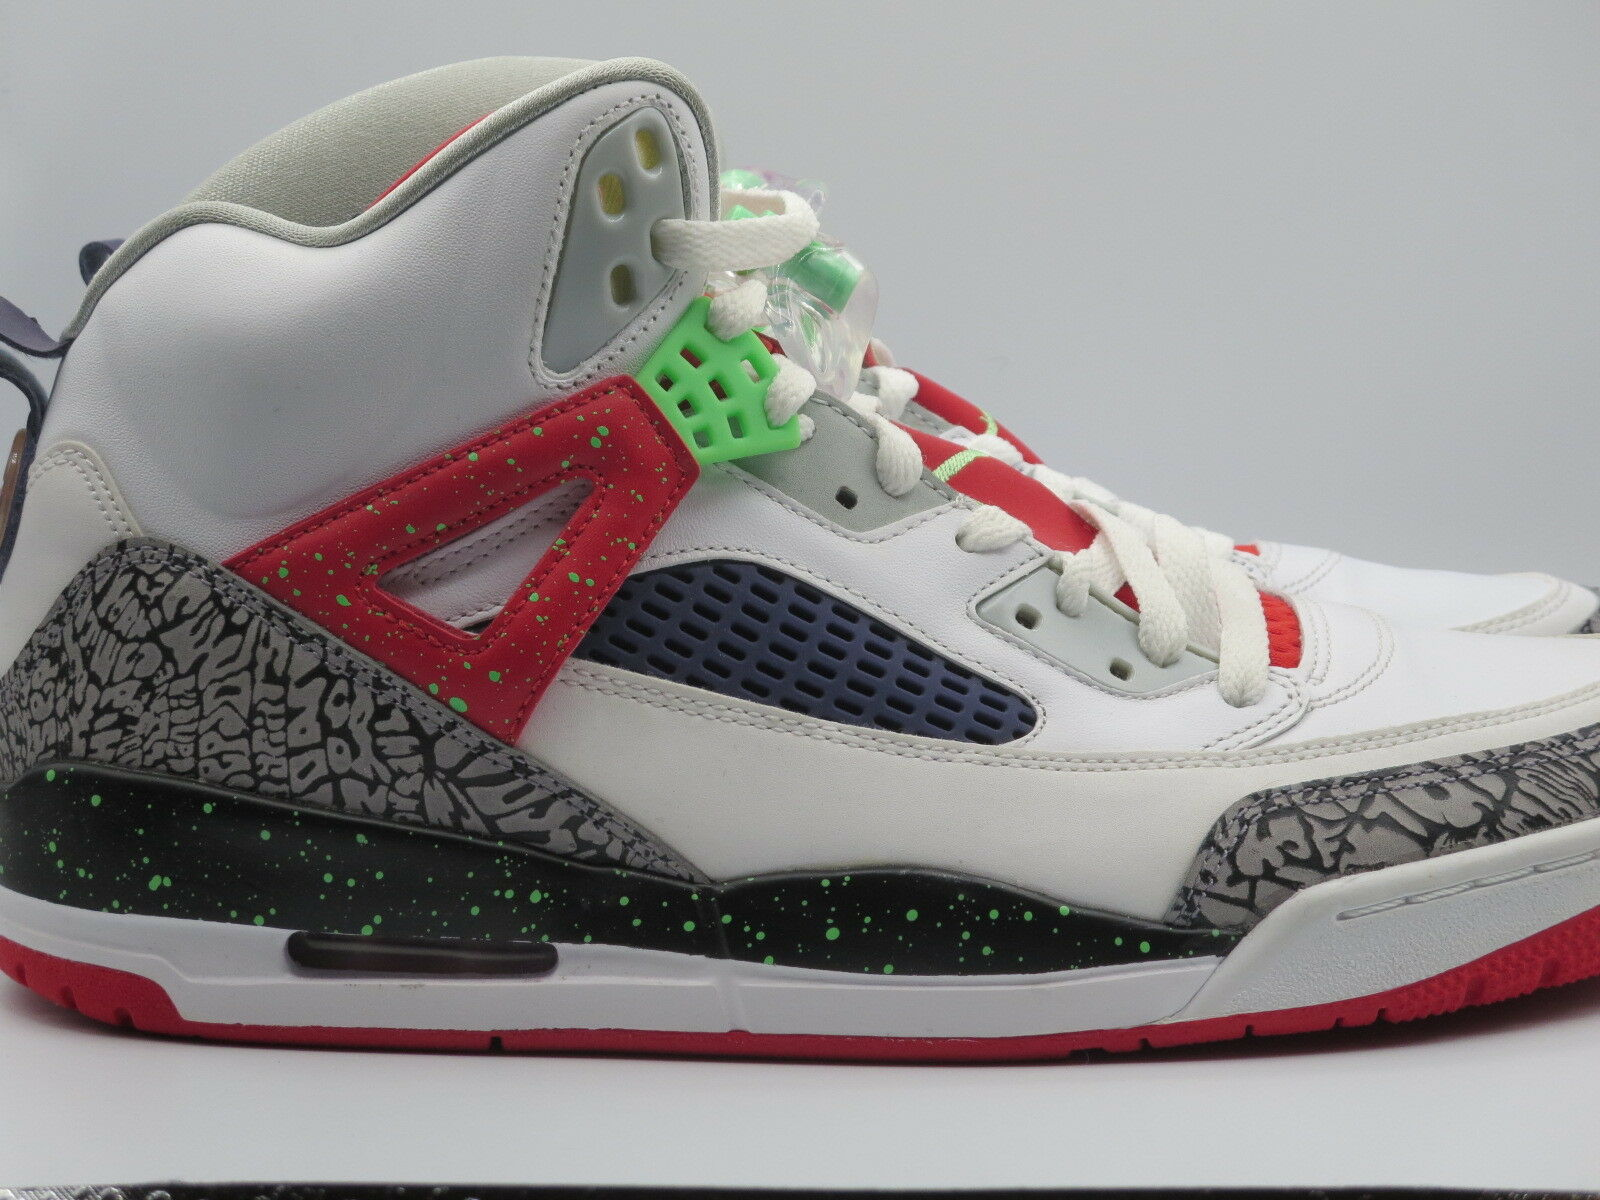 Nike Air Jordan Spizike WHITE POISON GREEN CEMENT Retro Sneakers shoes Size 11.5